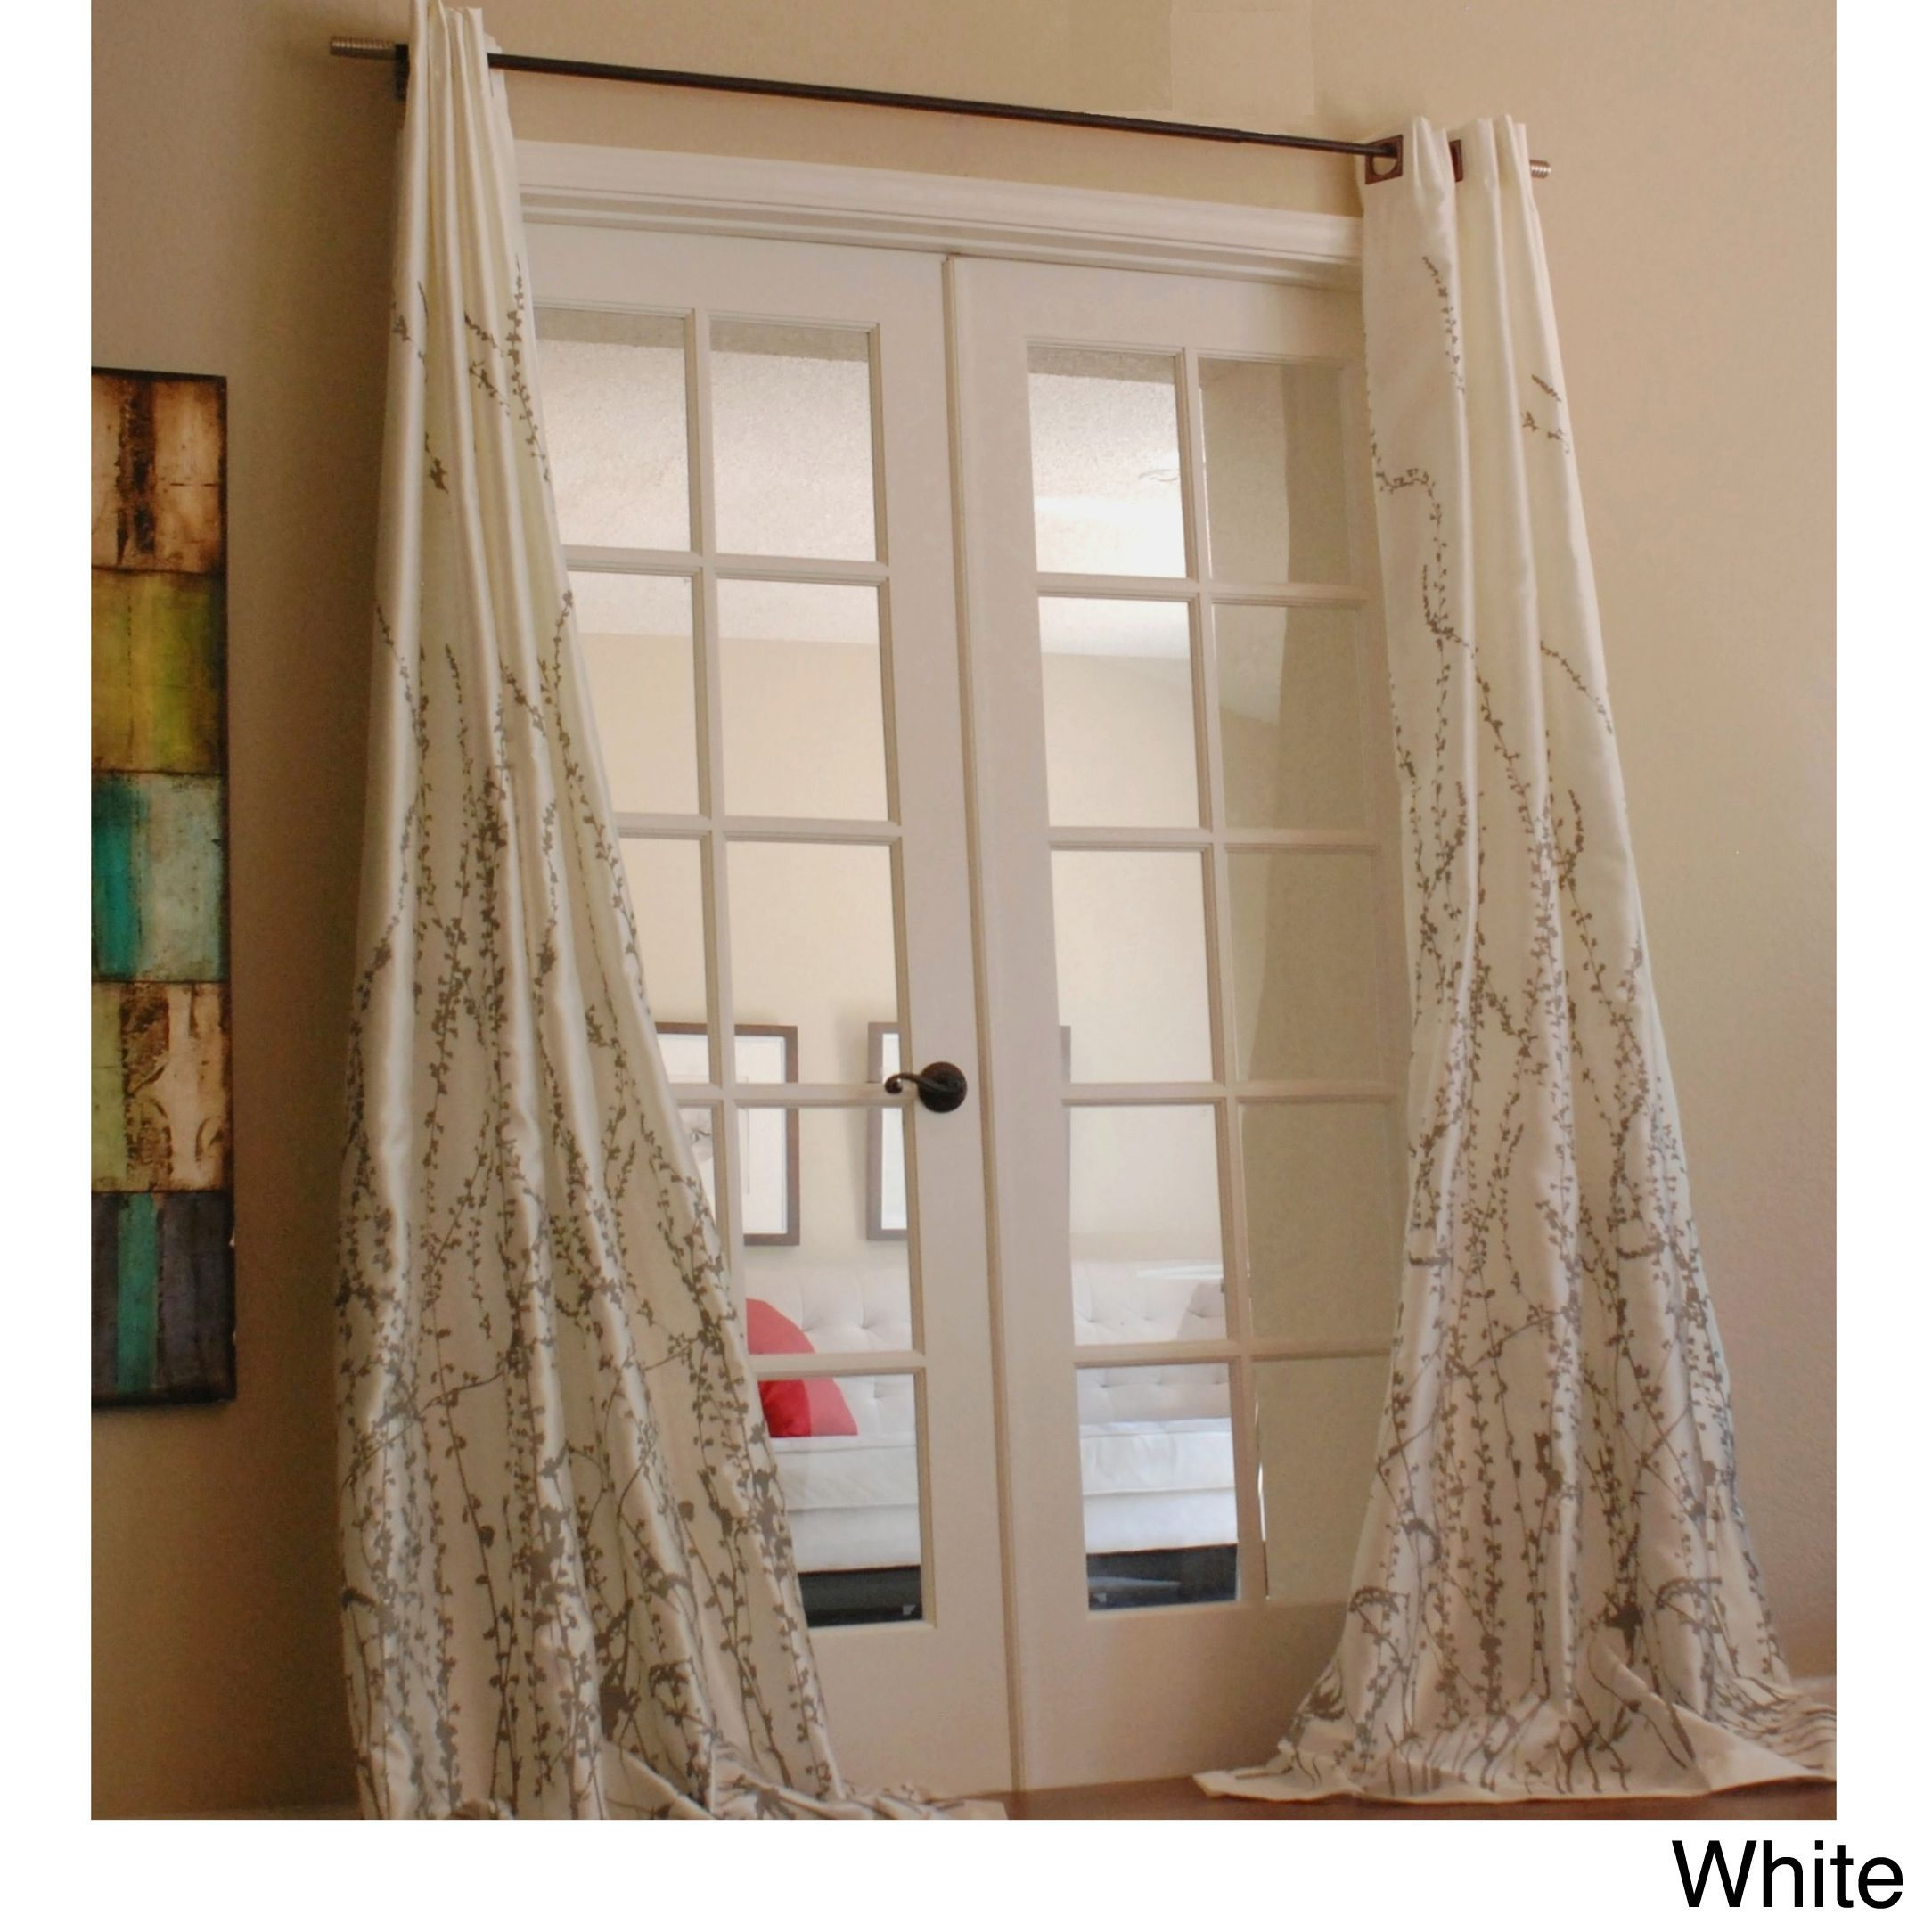 Curtain pair overstock shopping great deals on lights out curtains - Lara 96 Inch Shimmer Panel Window Curtain White Size 54 X 96